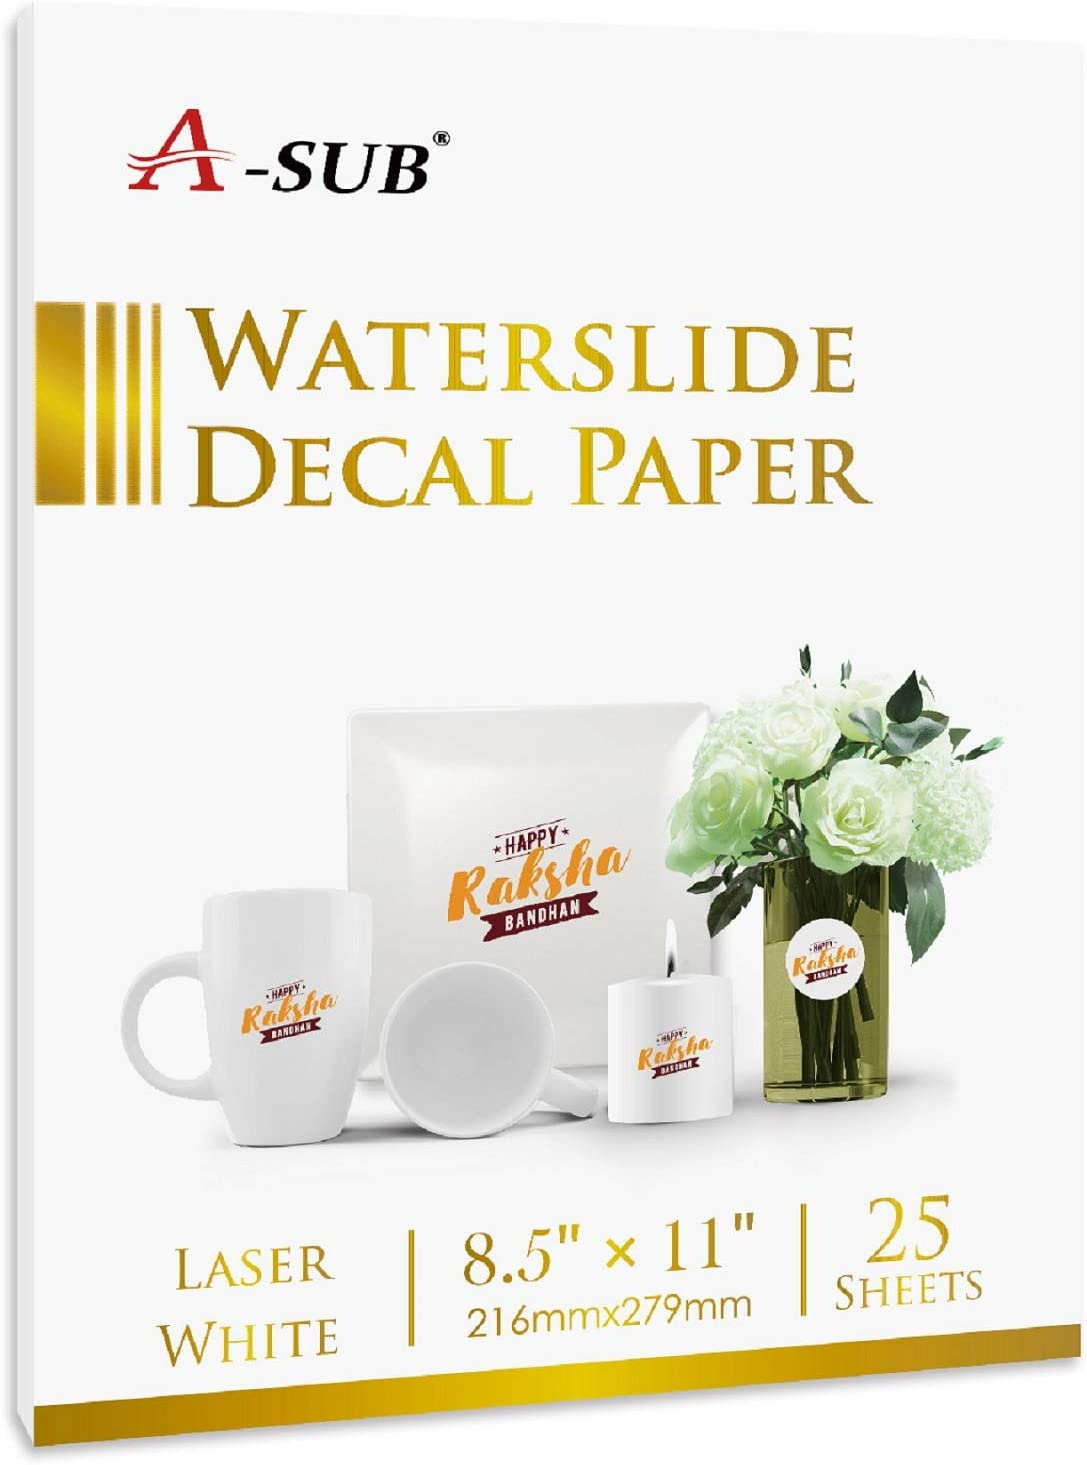 A-SUB Waterslide Decal Paper for 4 years Phoenix Mall warranty Printers 25 White Laser Sheets